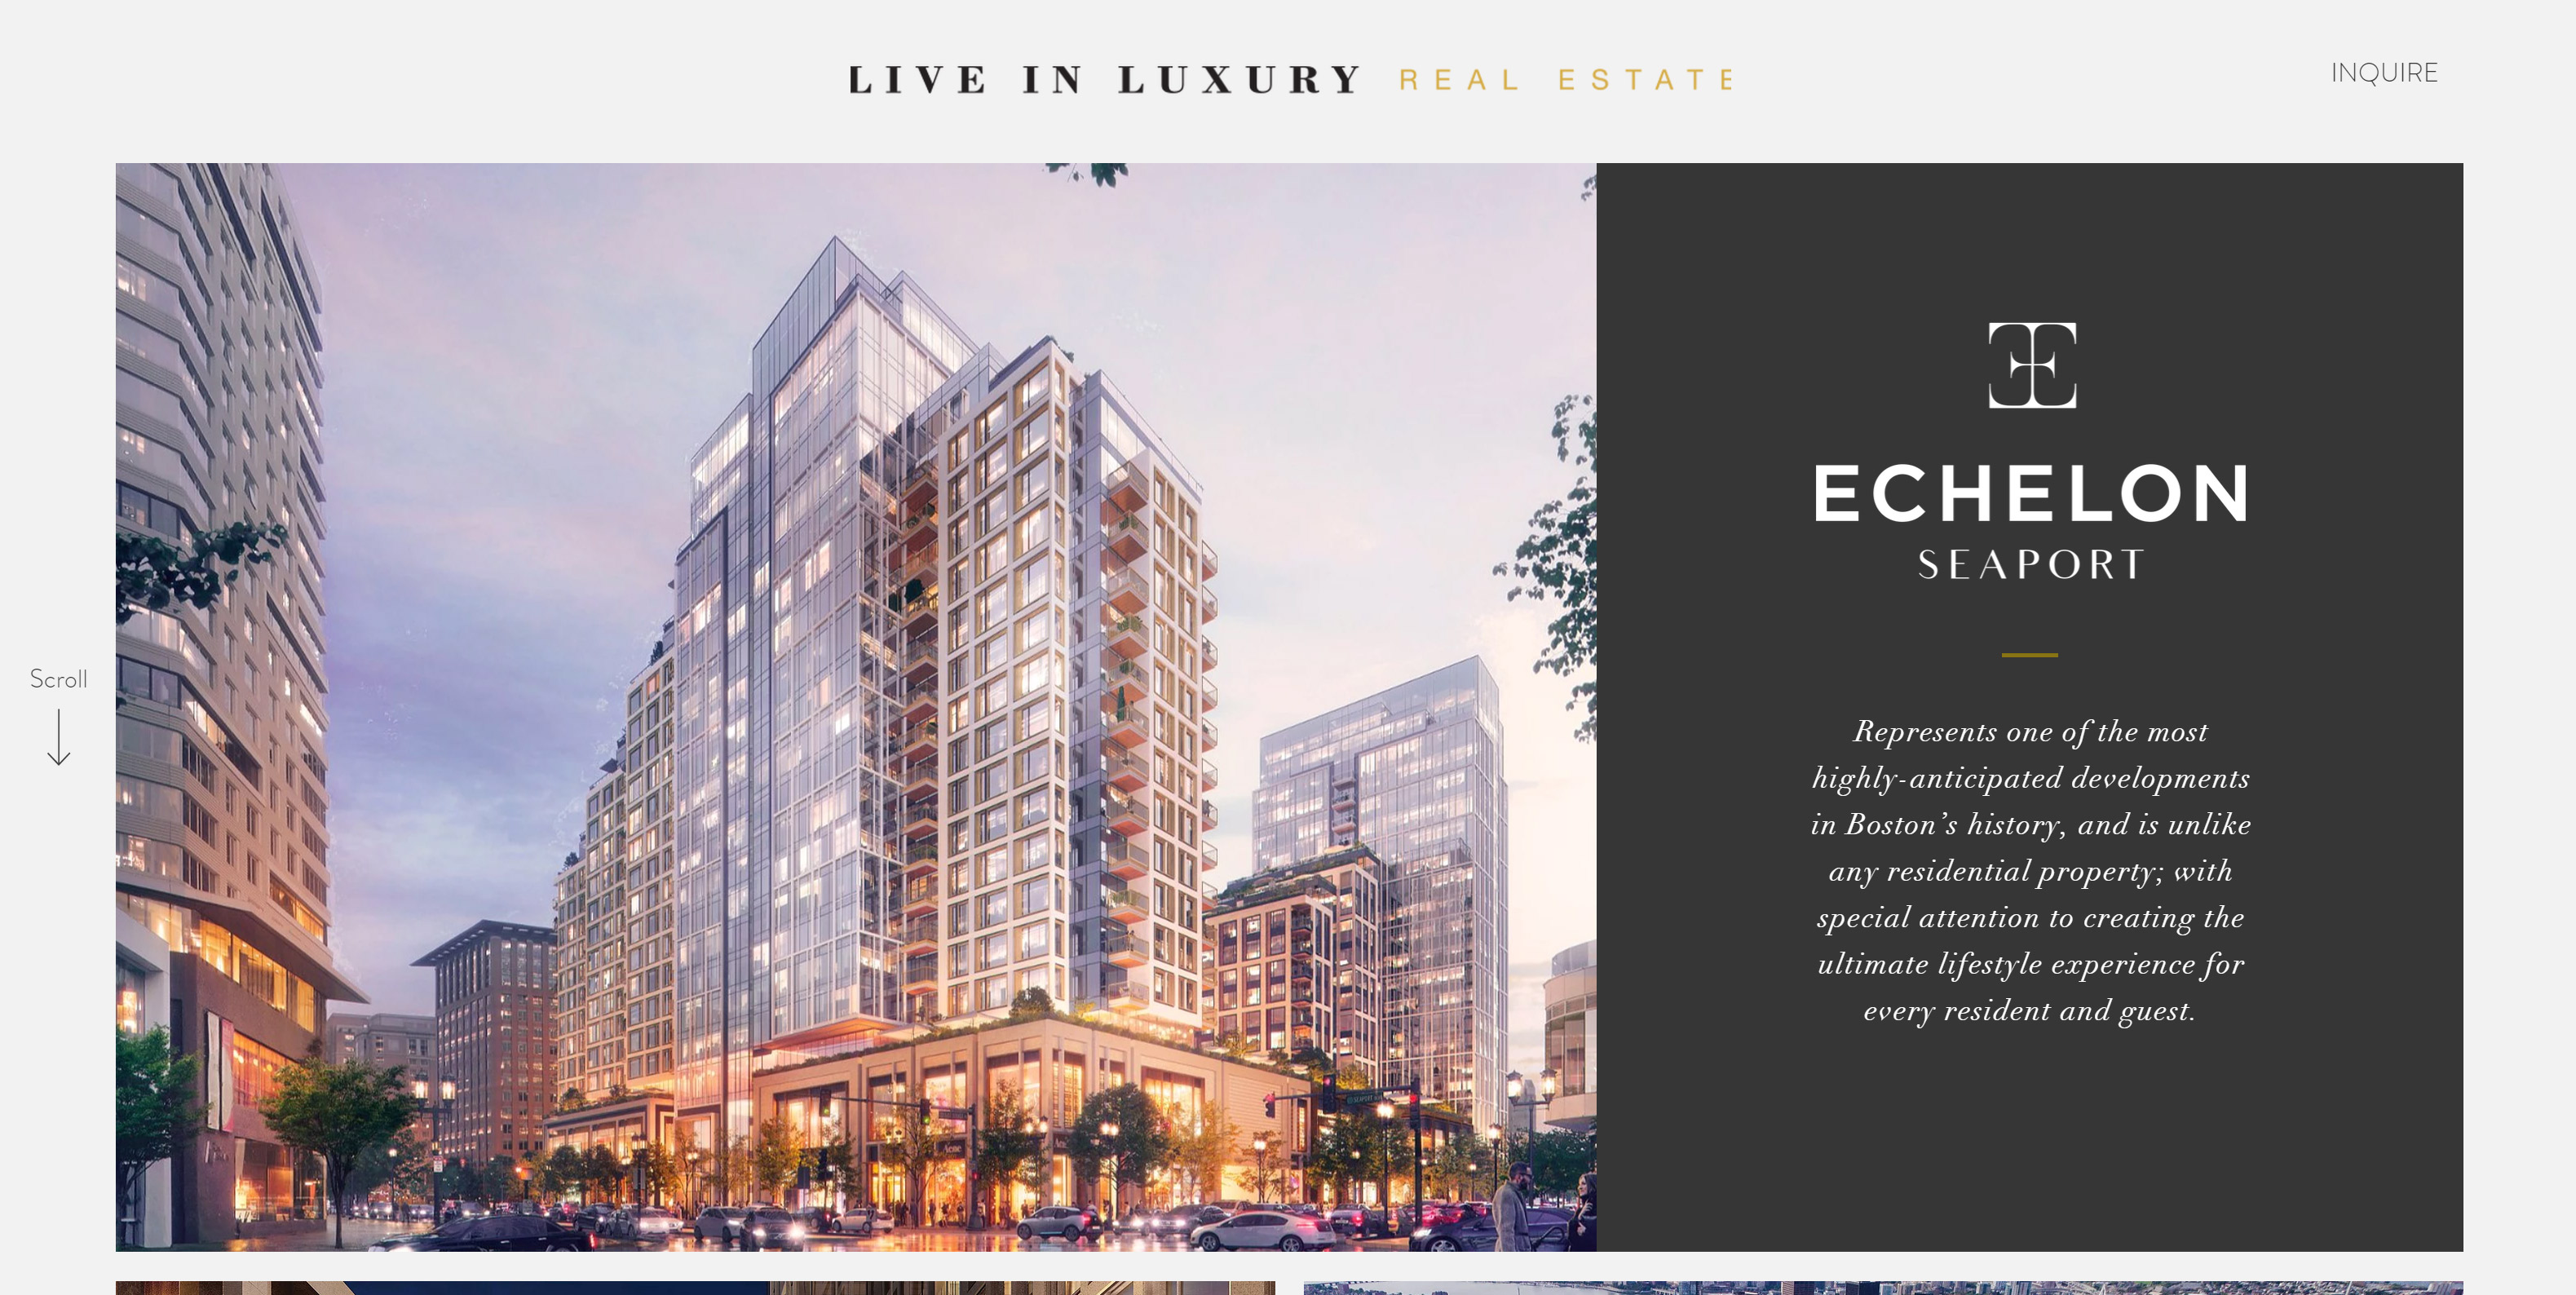 Sarah-Cas-Graphic-Design-Website-Design-Live-In-Luxury-Real-Estate-Echelon-Seaport-Boston-8